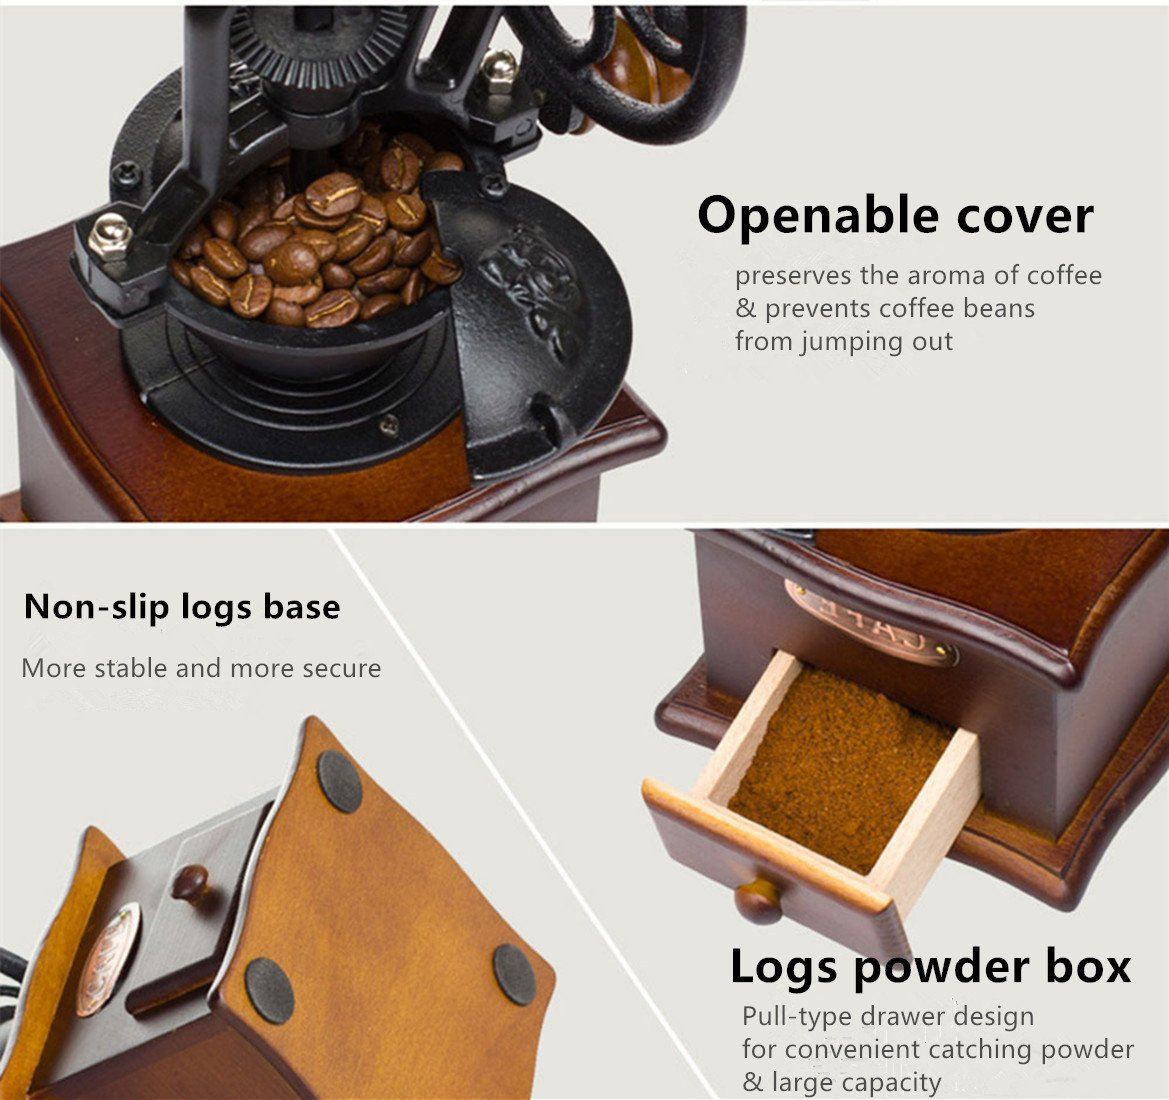 Fecihor Manual Coffee Grinder With Grind Settings and Catch Drawer - Classic Vintage Style Manual Hand Grinder Coffee Mill by Fecihor (Image #6)